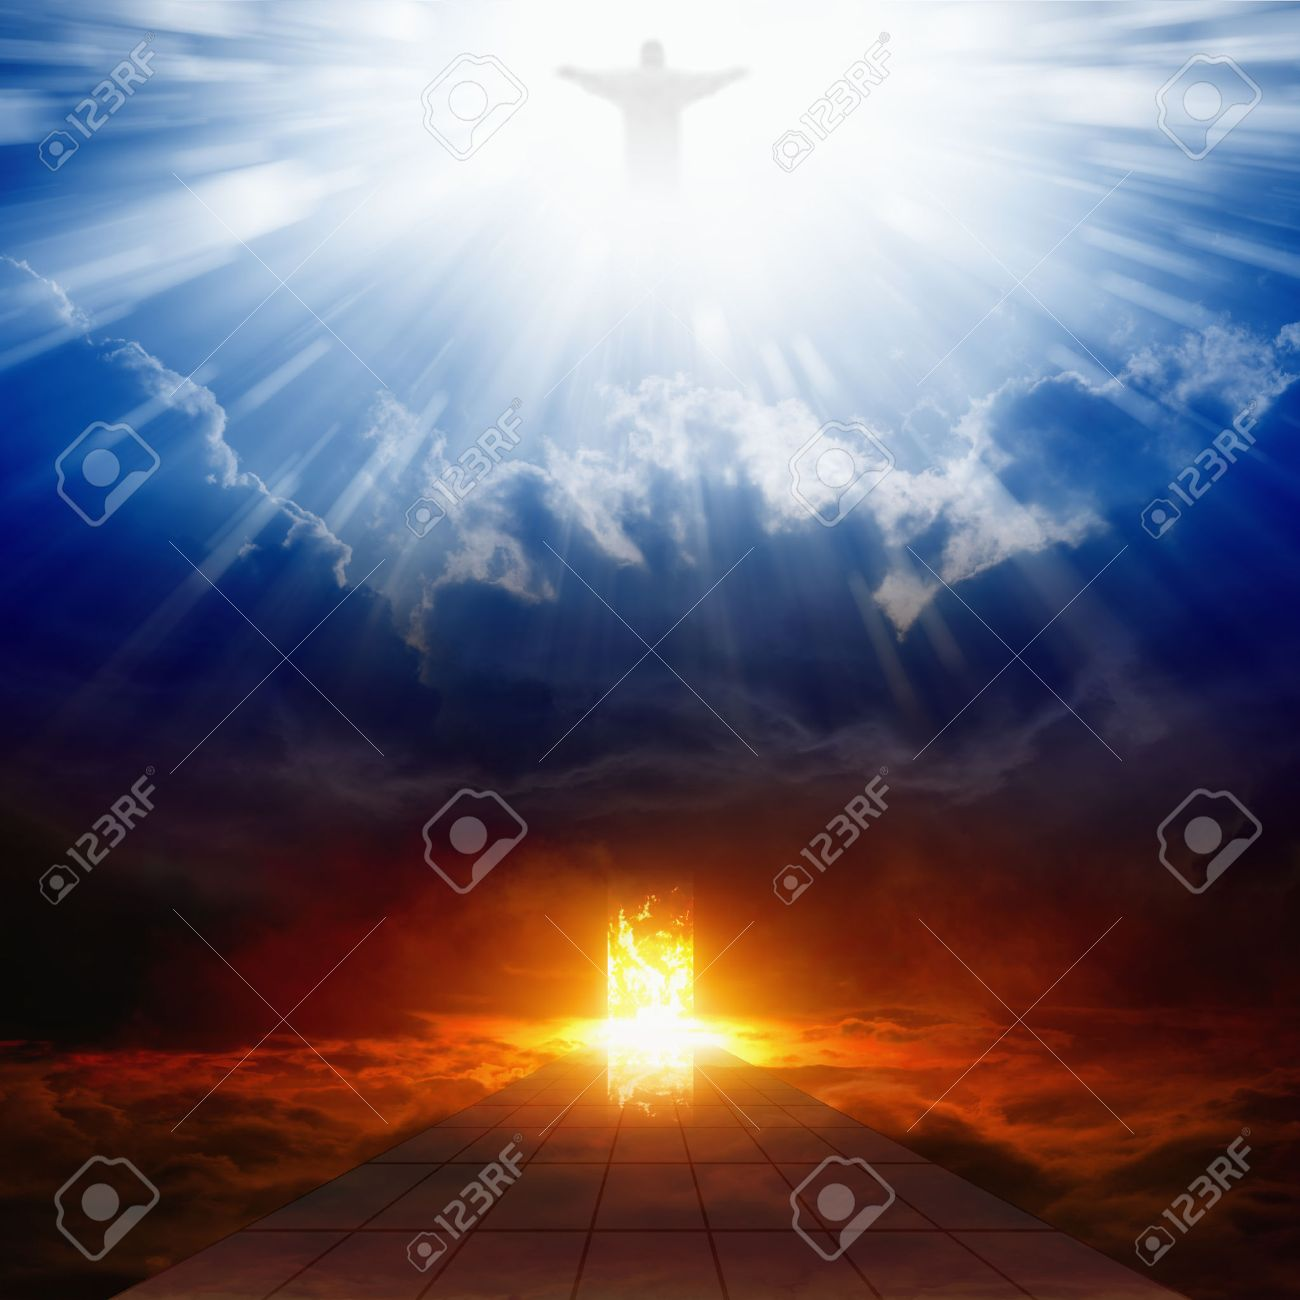 Jesus Christ In Blue Sky With Clouds Bright Light From Heaven Burning Doorway